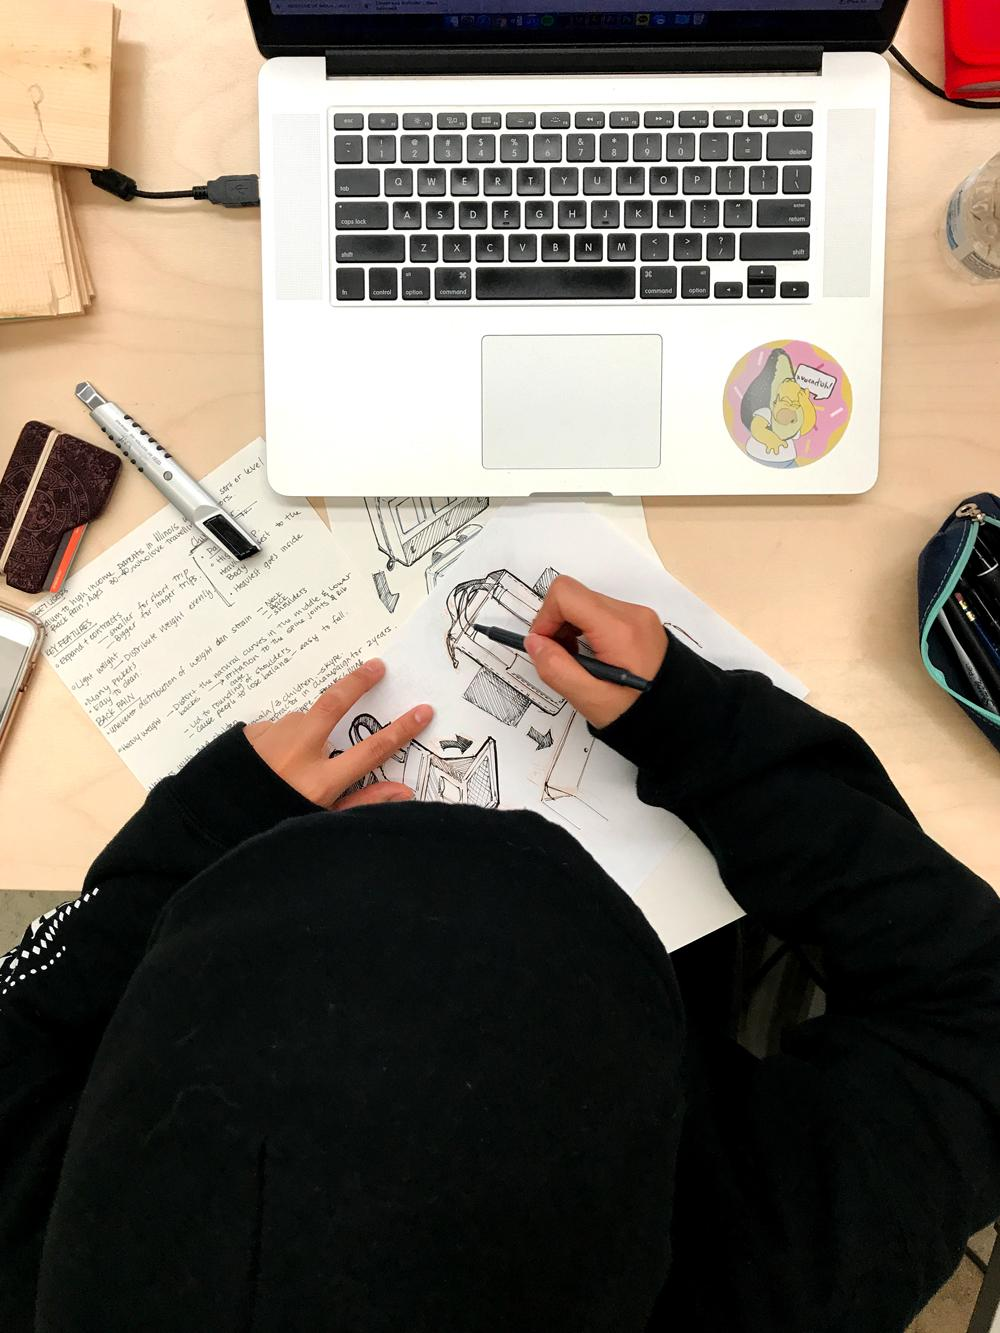 Lulu Guo, A Design Student Sketching in the Studio, 2017. Digital photograph.